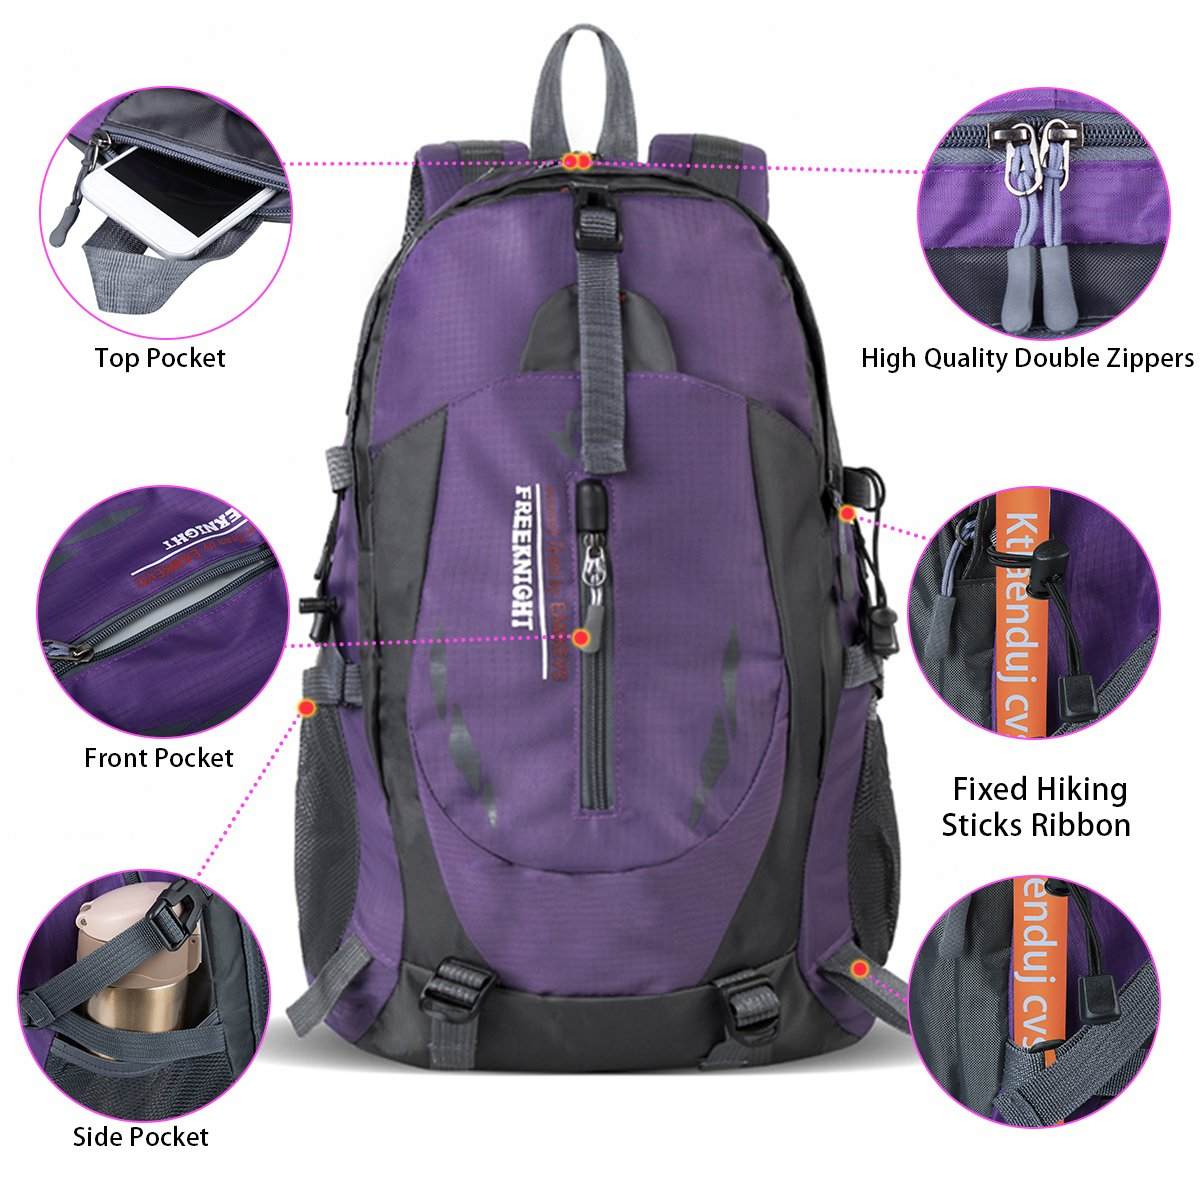 Hiking Backpack Water Resistant Sports Backpack Outdoor Bag for Travel Climbing Camping Mountaineering School Bag Hiking Daypack Size 11.8\'\'x 8.6\'\'x 20.4\'\' (Purple)